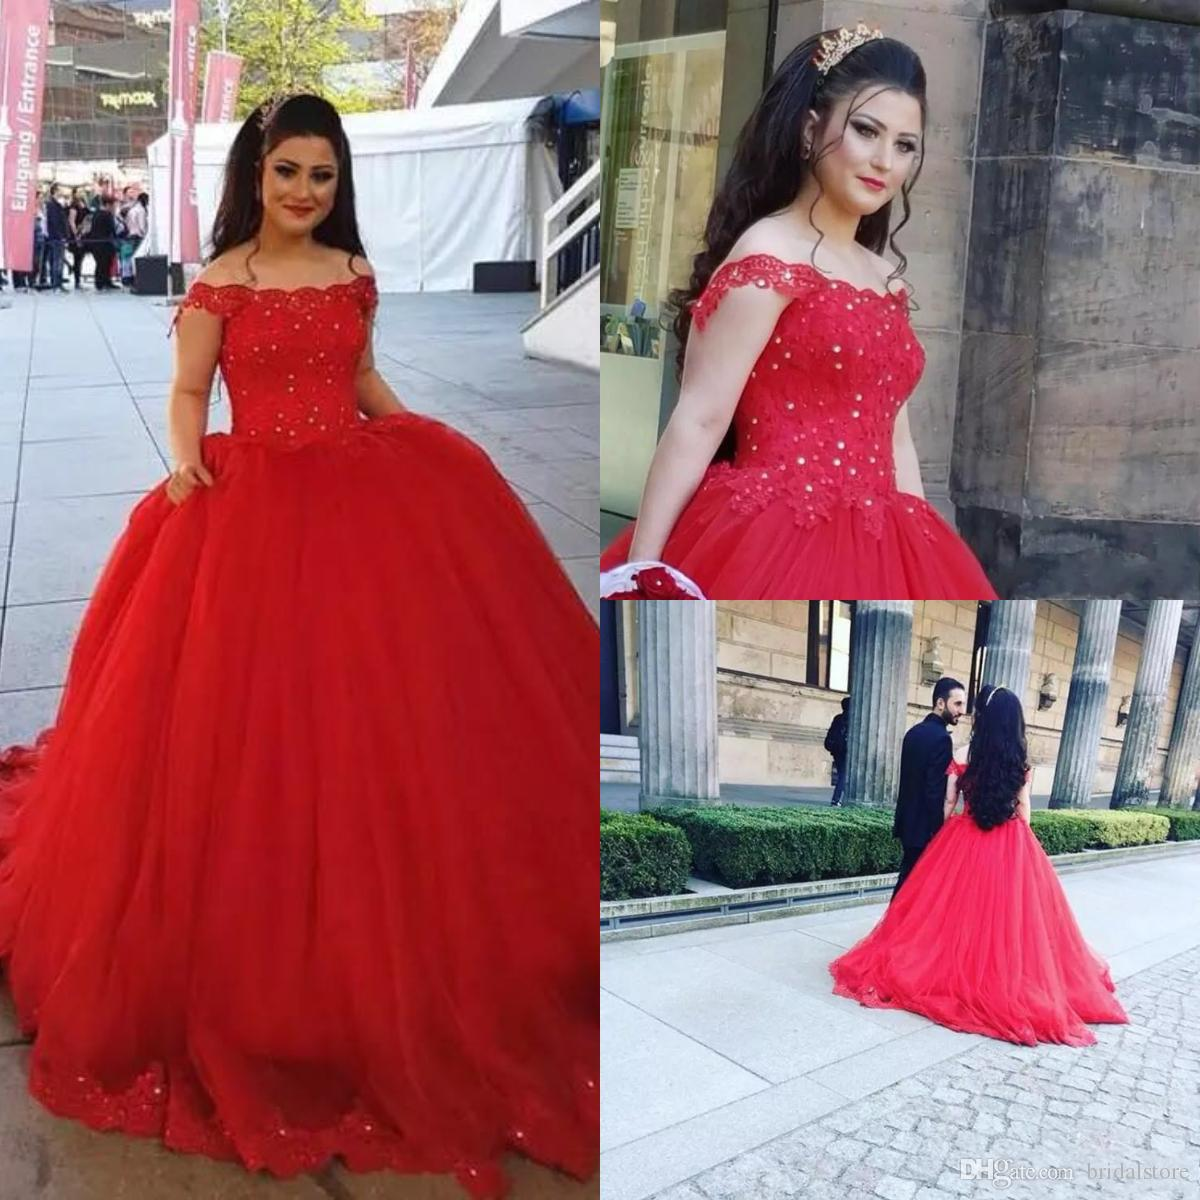 98438e2c968 Vintage China Off The Shoulder Princess Wedding Dresses Red Applique Lace  Beaded Puffy Ball Gown Bridal Gown Plus Size For Country Garden Bridal Gown  ...